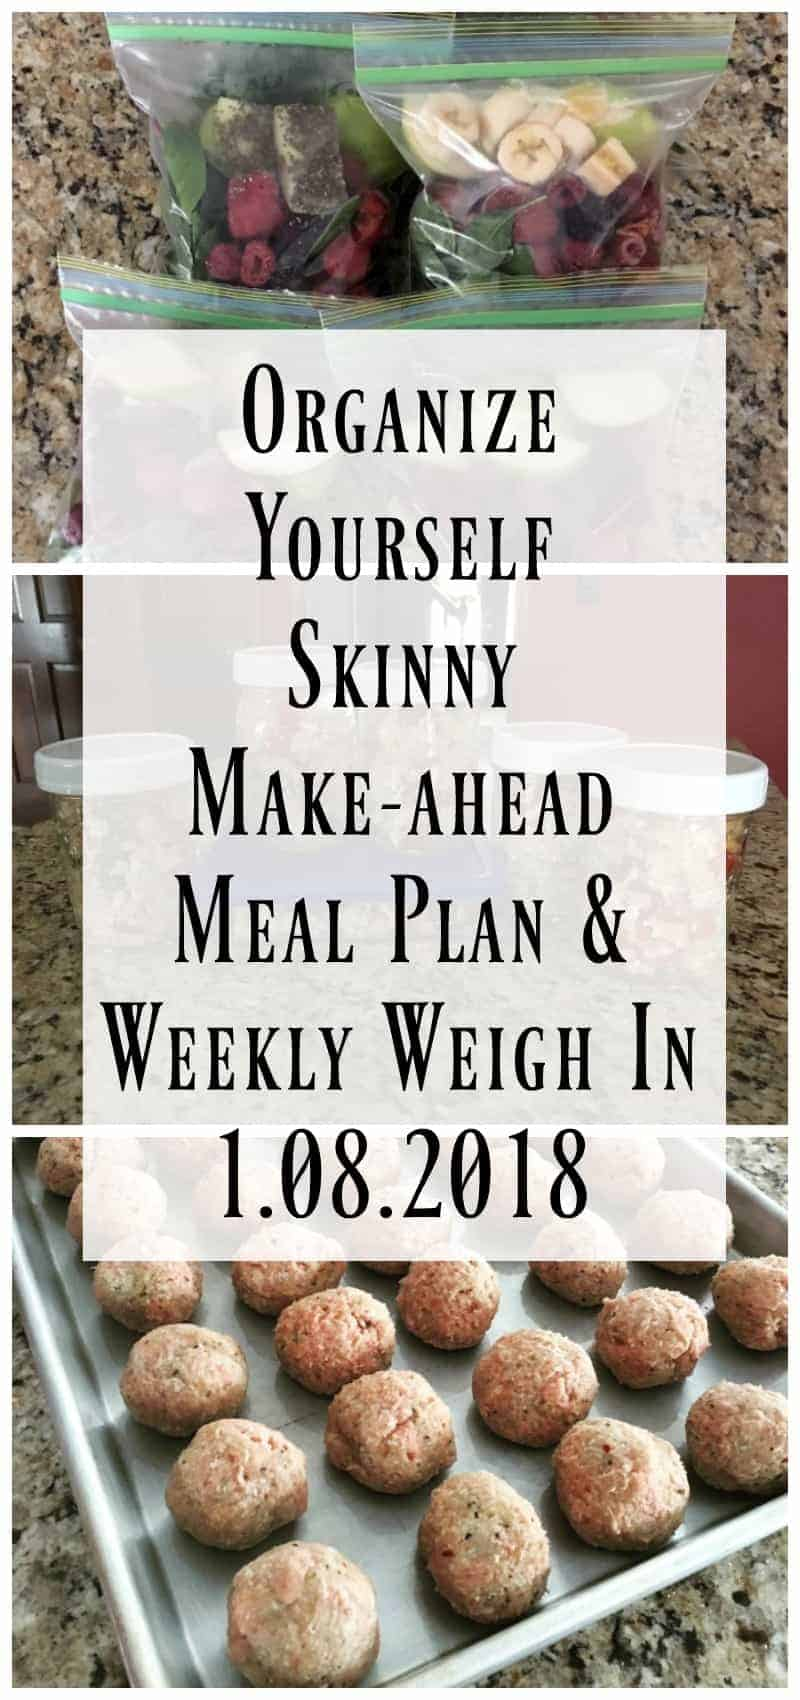 Make-ahead Meal Prep Weight Loss Meal Plan January 8th, 2018